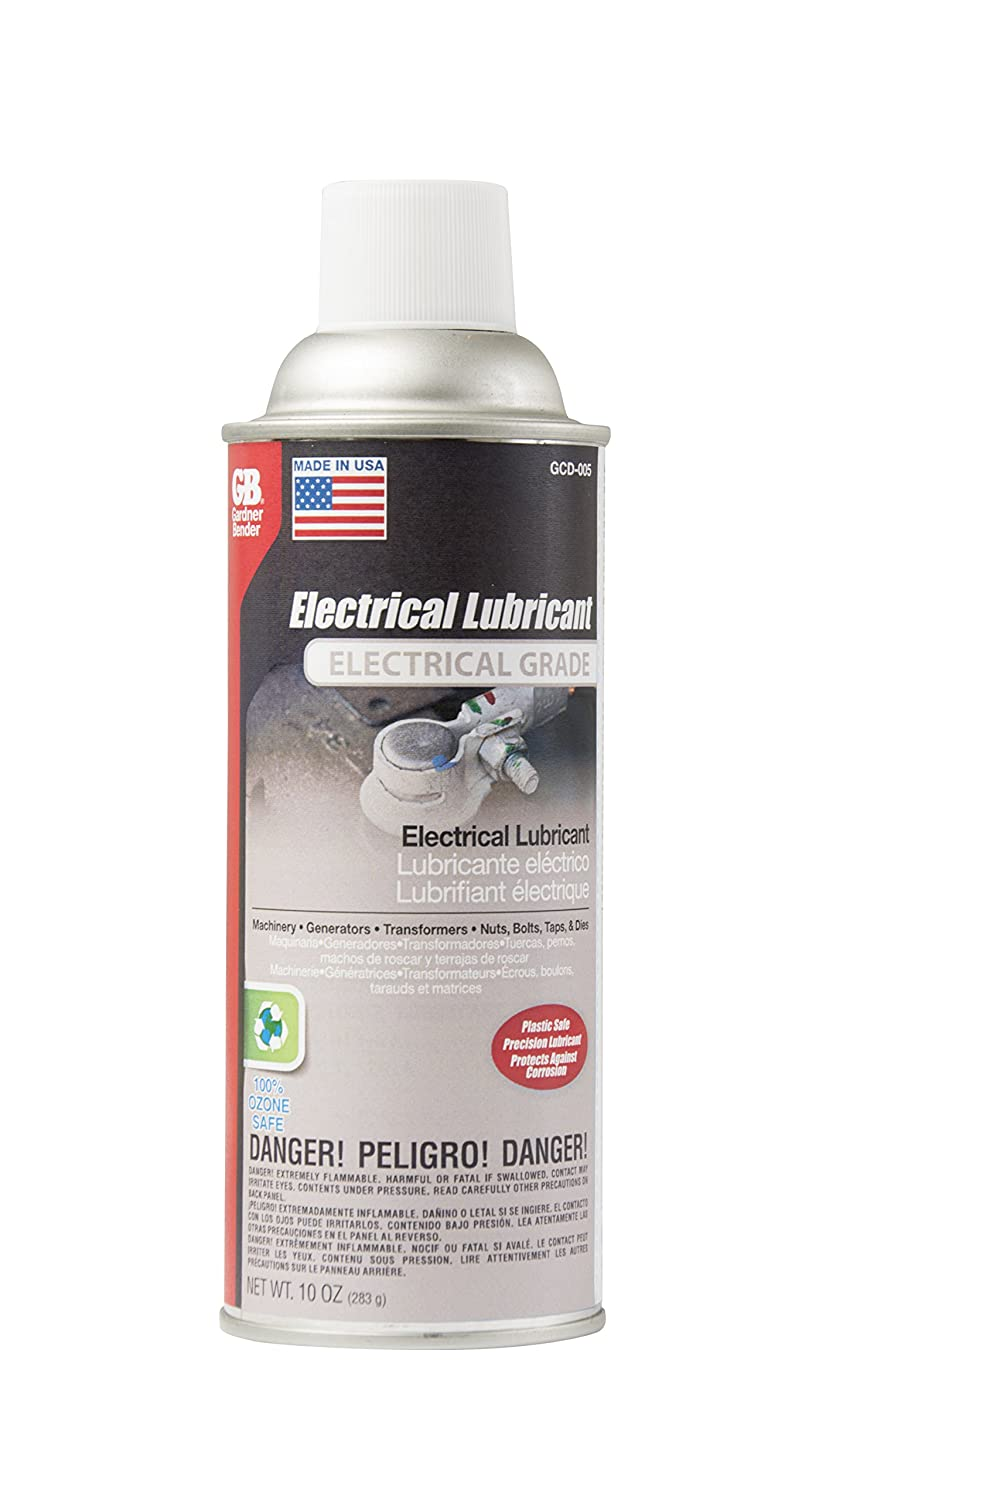 Amazon.com: Gardner Bender GCD-005 Electrical Lubricant, Prevents & Repairs Corrosion, Can: Home Improvement